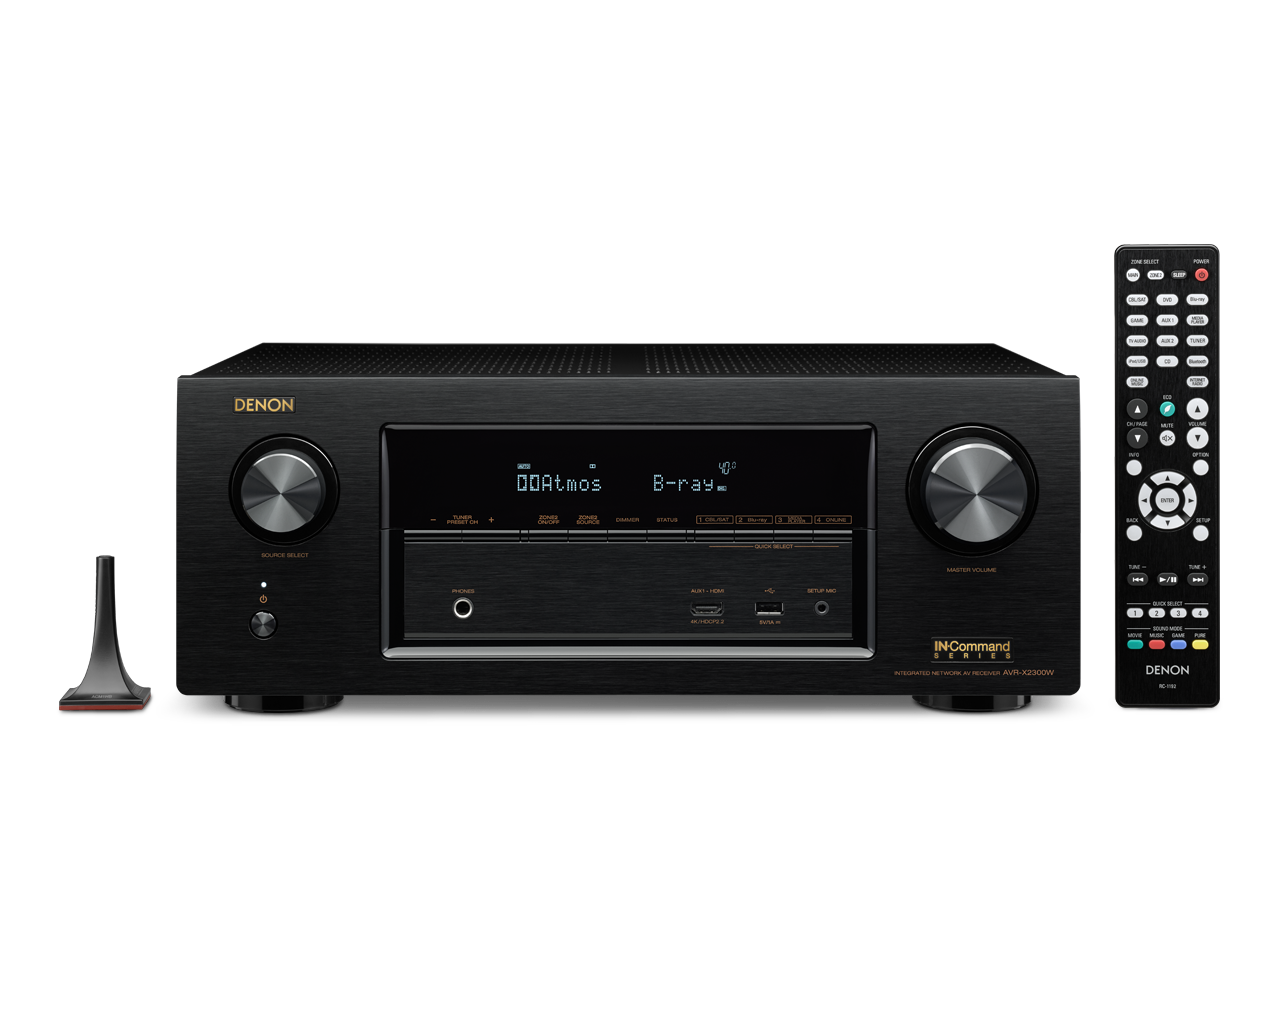 Receiver Denon Avr - X2300W 7.2 Canais Full 4K Ultra HD Bluetooth e Wifi